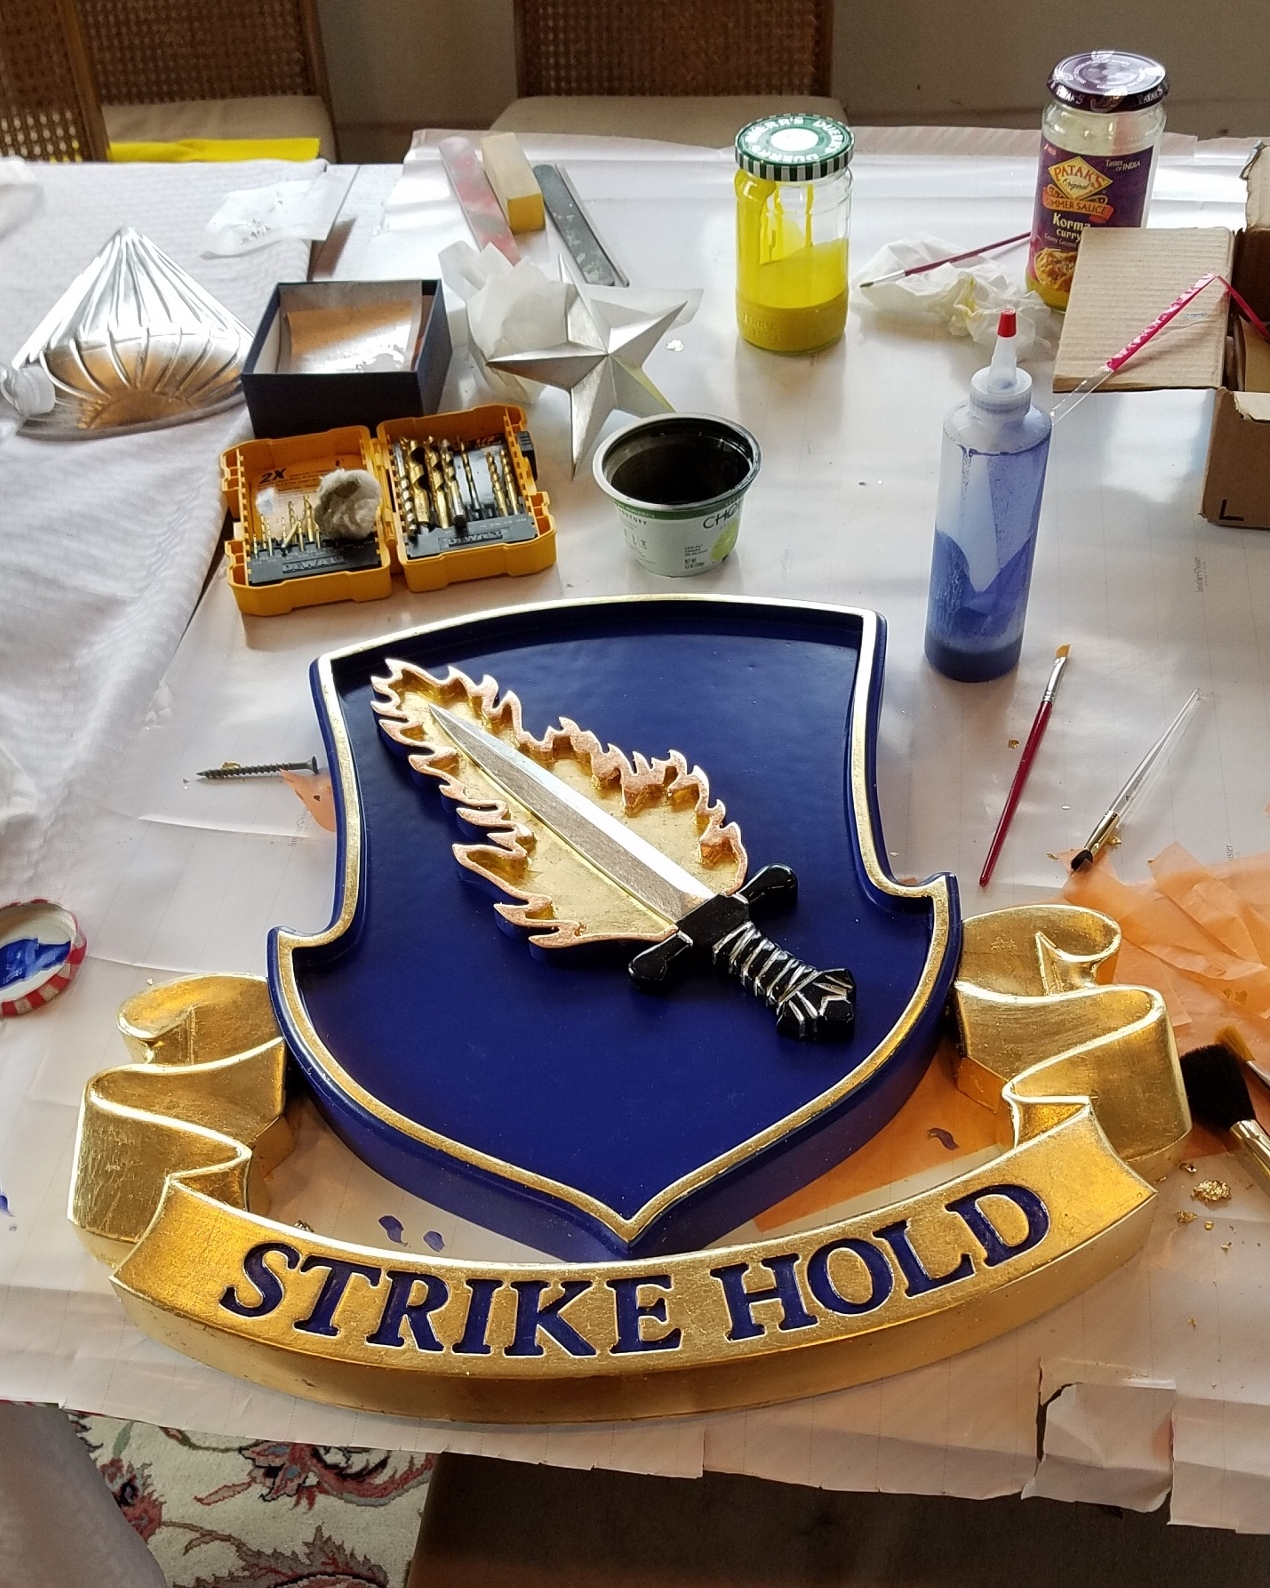 strike hold insignia hand carved for the 82nd command classic signs nc